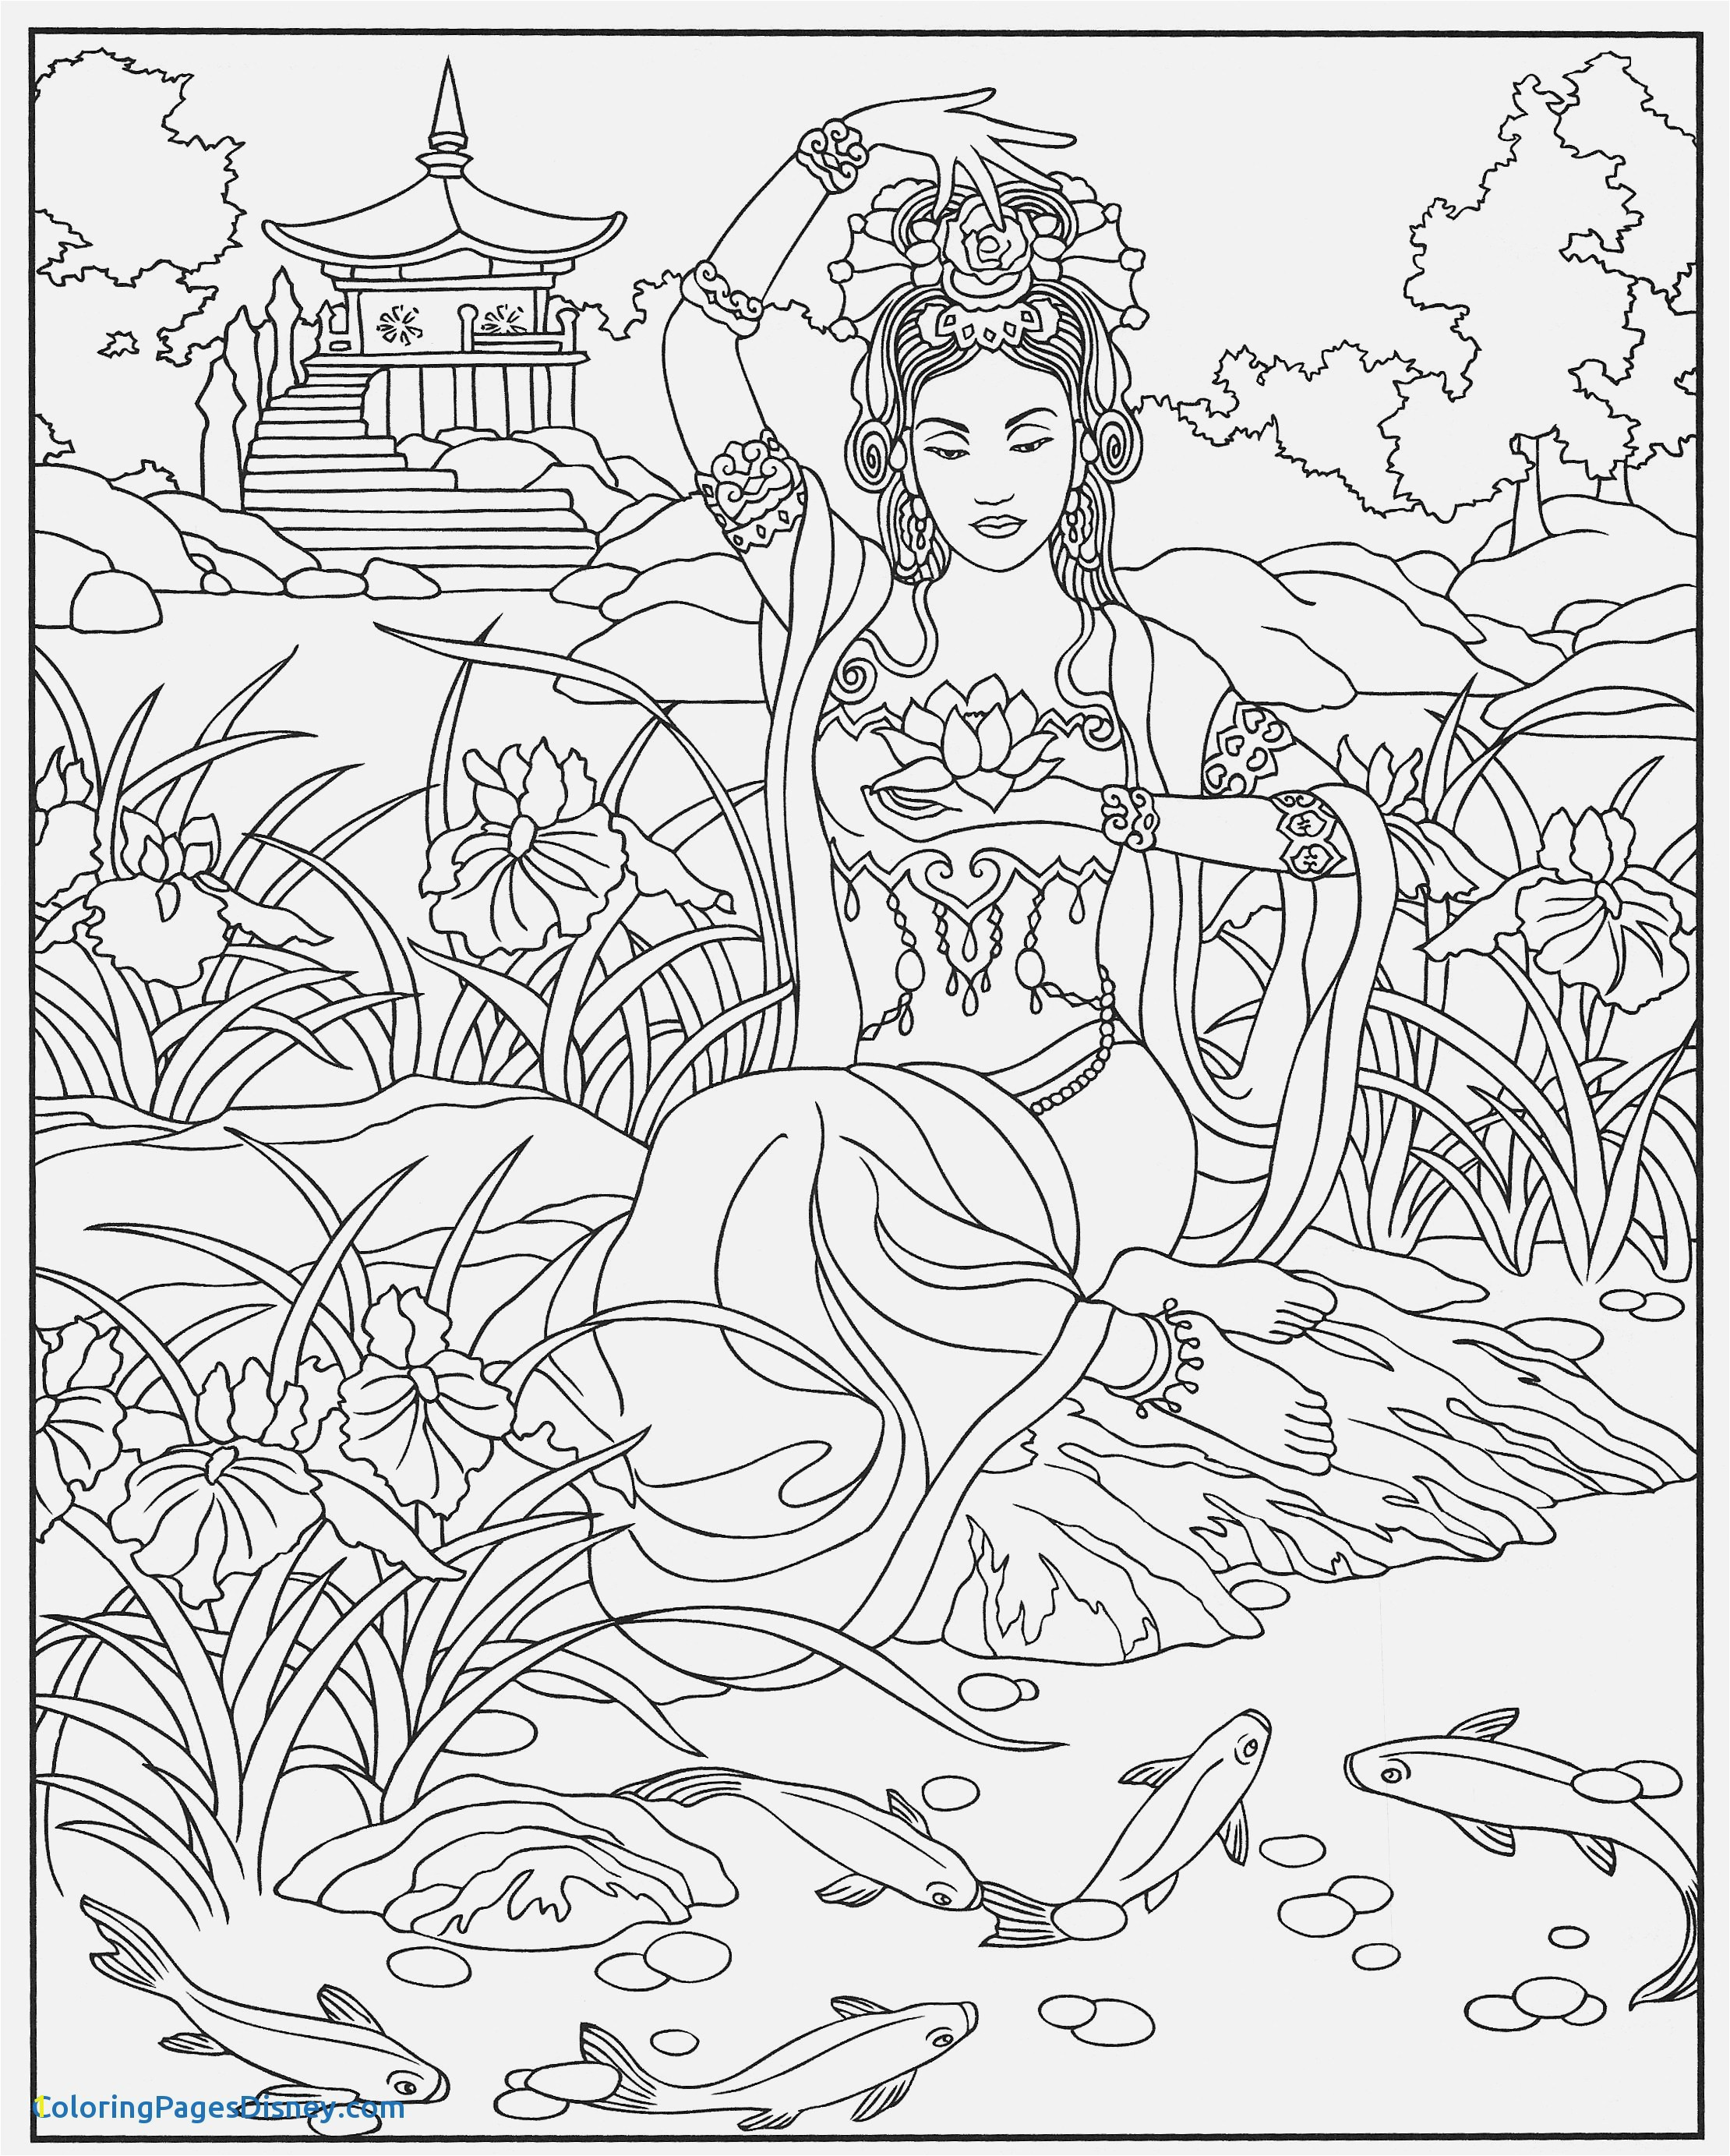 woman at the well coloring sheet zorro coloring games fresh cool coloring page unique witch coloring pages new crayola pages 0d